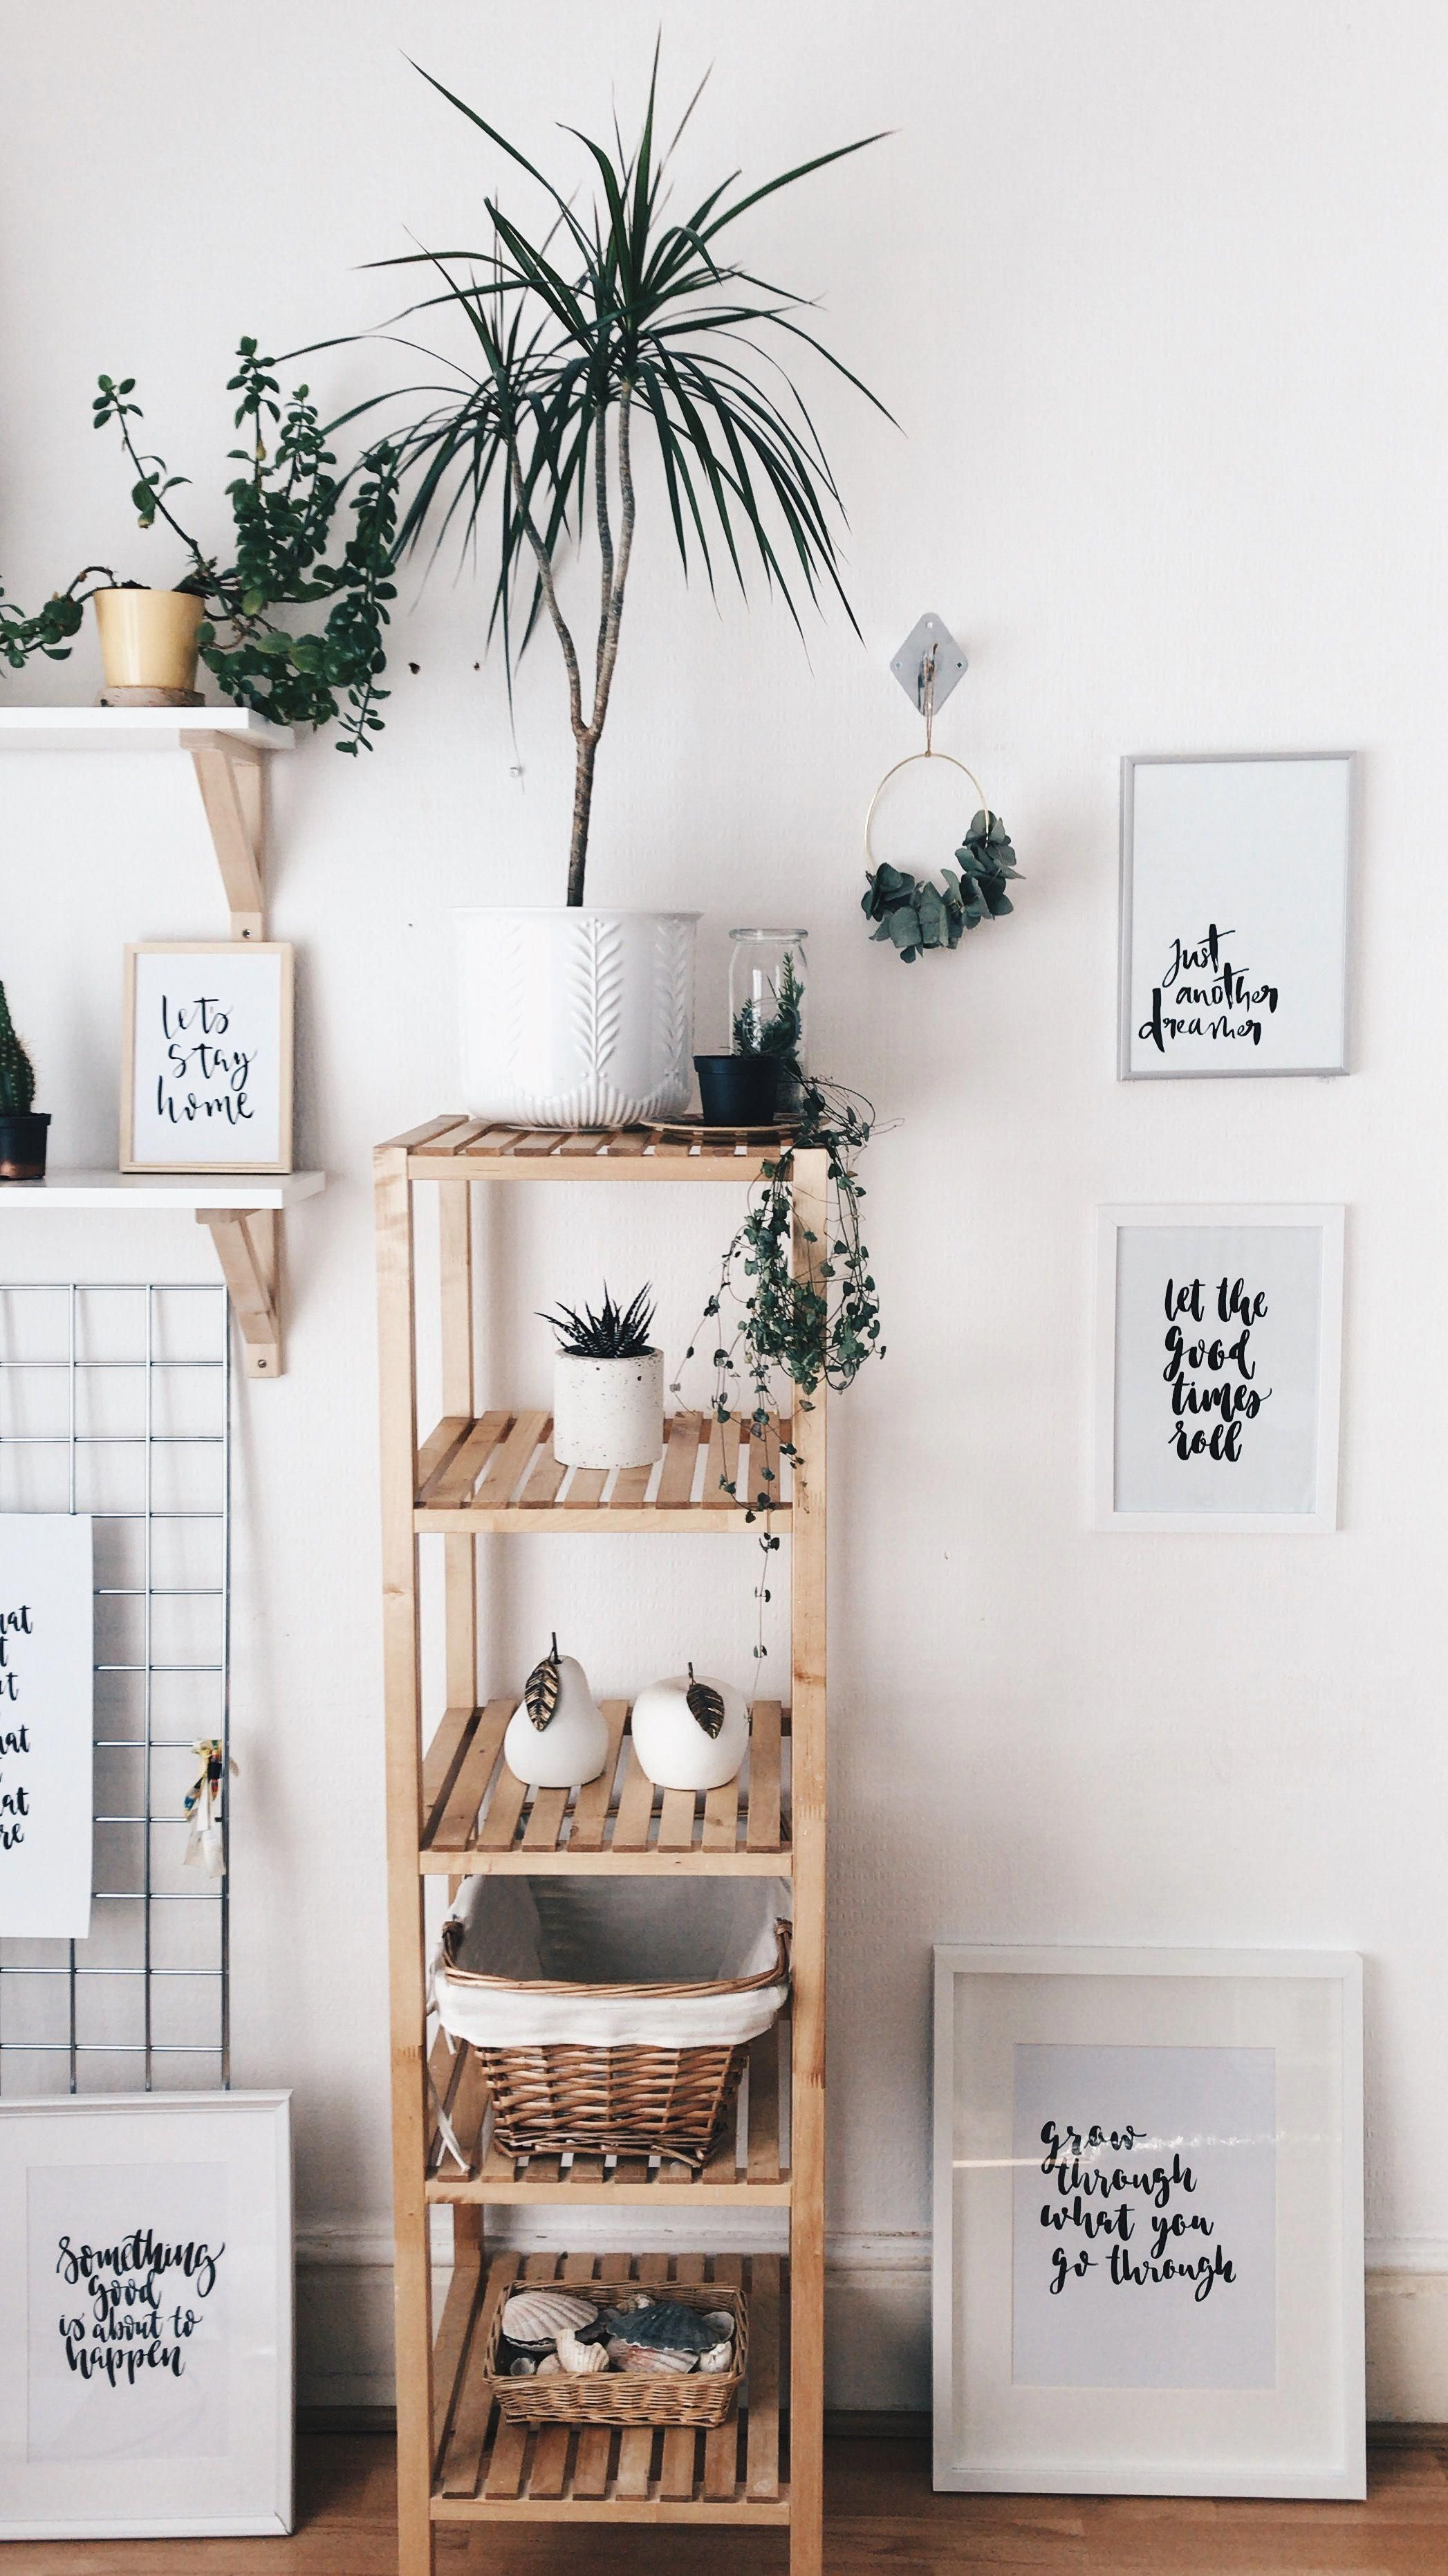 12 Best Scandinavian Interior Design Tips And Ideas With Images Home Decor